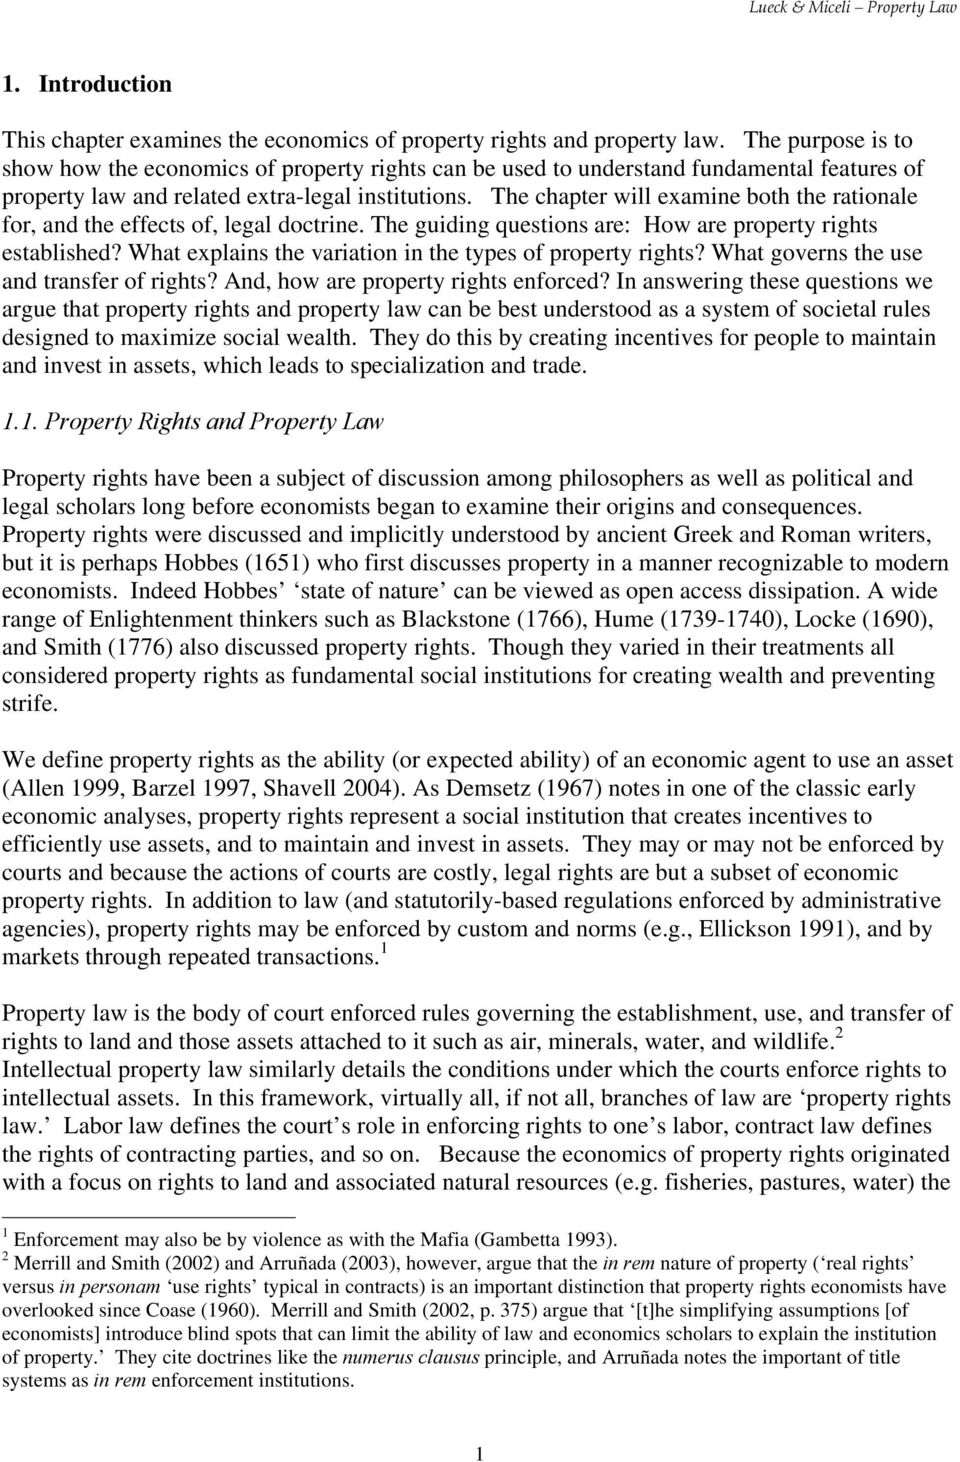 The chapter will examine both the rationale for, and the effects of, legal doctrine. The guiding questions are: How are property rights established?